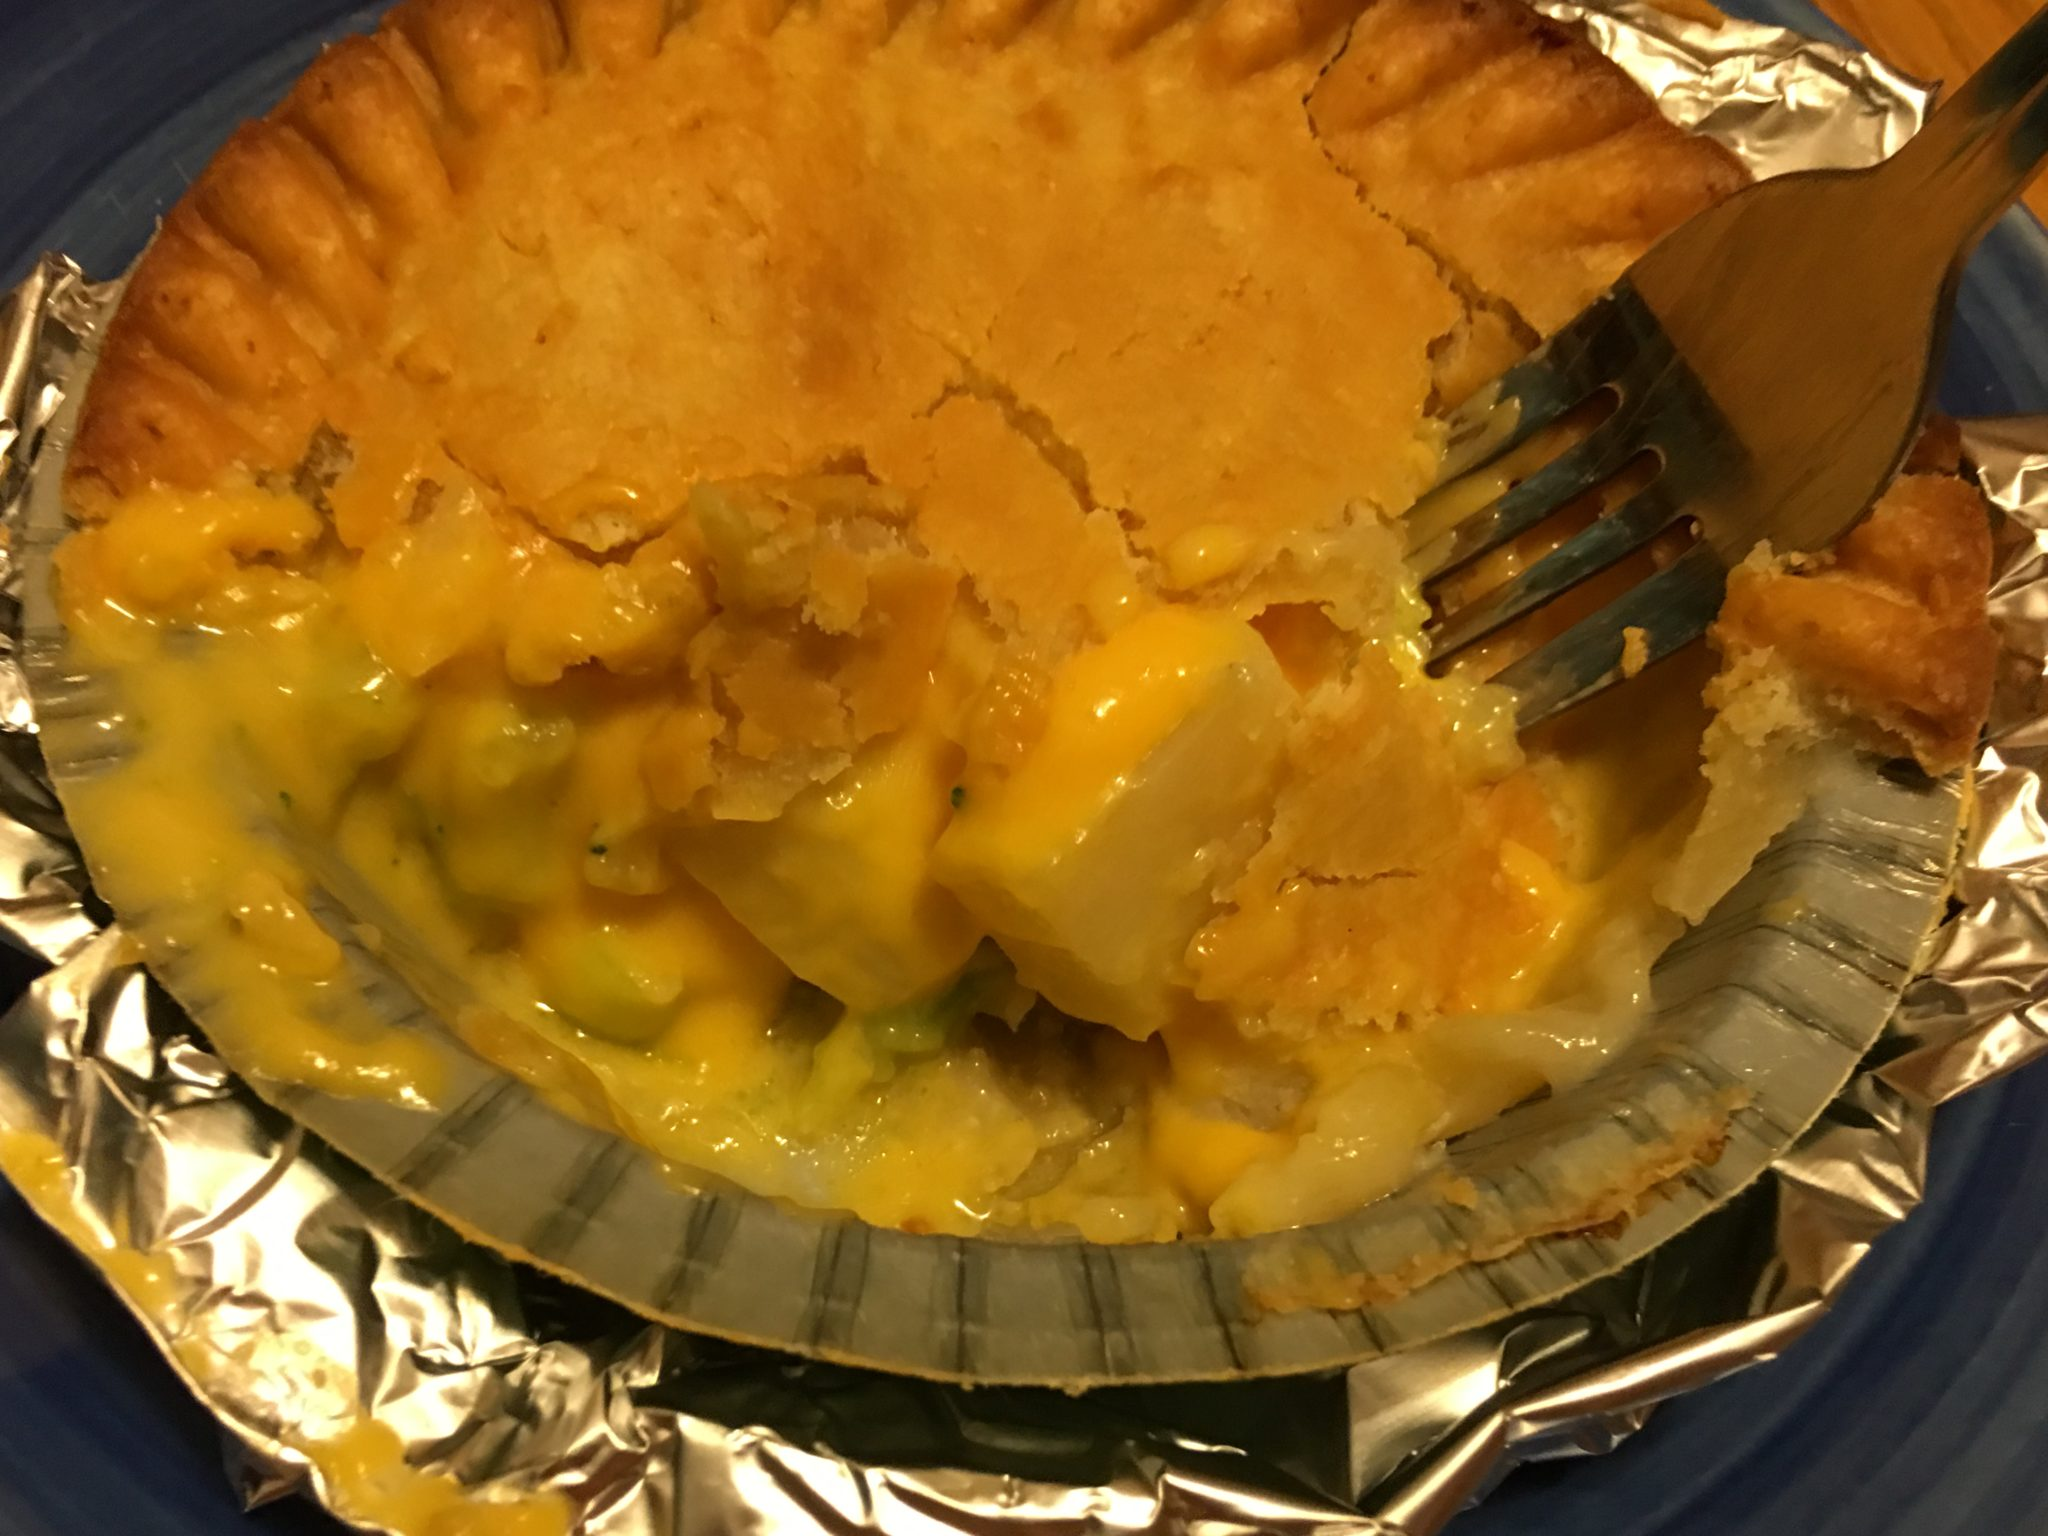 You never know when you will need a delicious meal in a pinch. Banquet and Marie Callender's Pot Pies are perfect for those times.